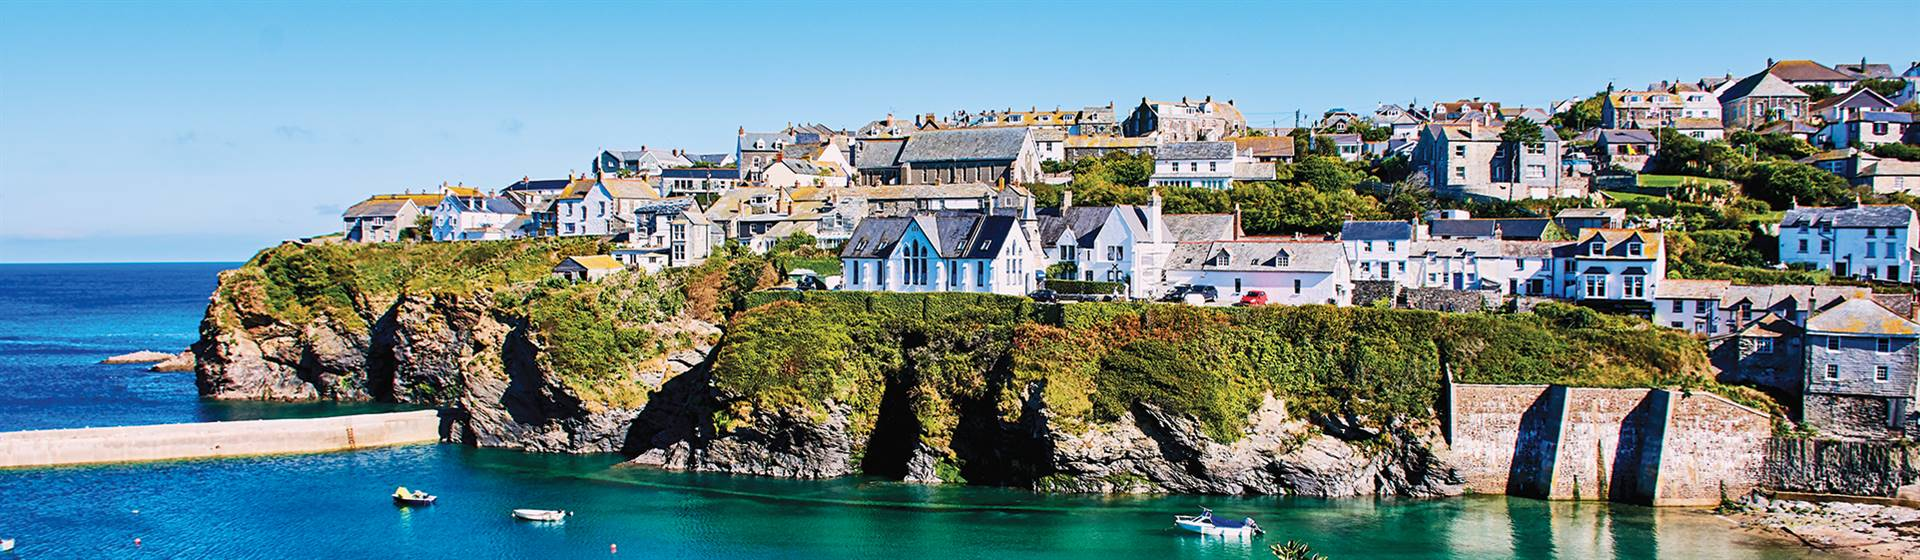 Cornwall's Charms: Looe Valley Railway & St Ives